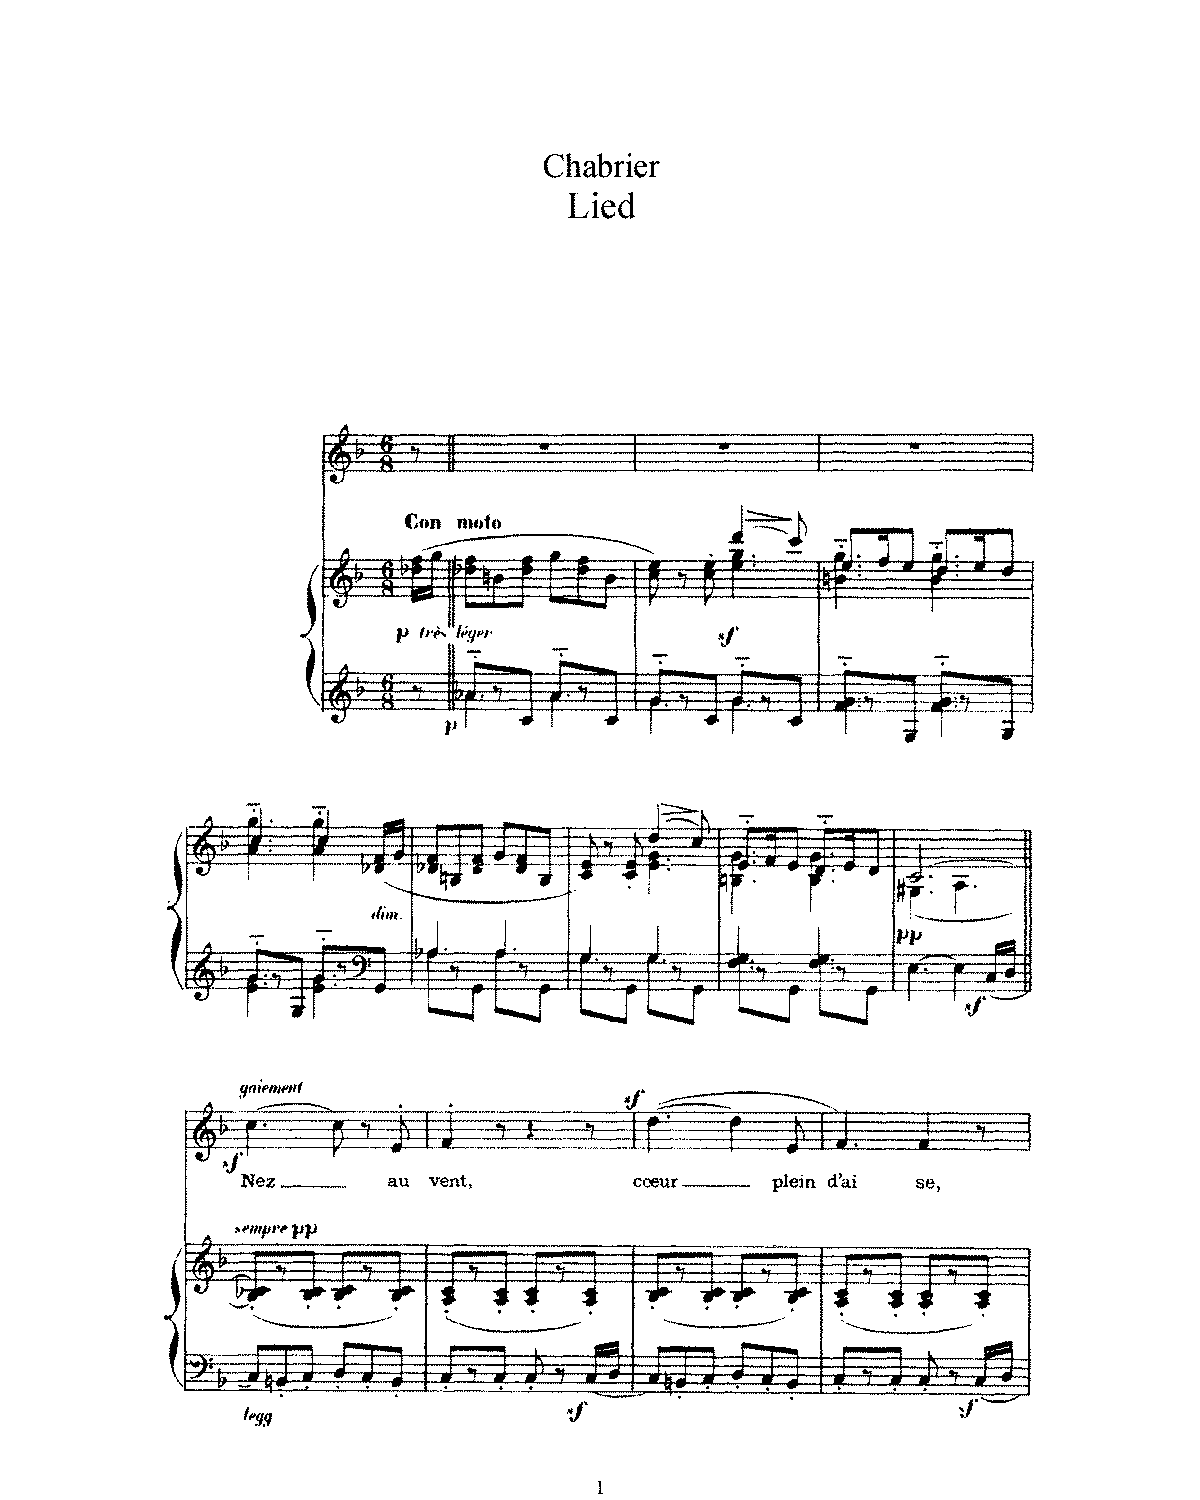 PMLP51830-Chabrier - Lied nez au vent (voice and piano).pdf